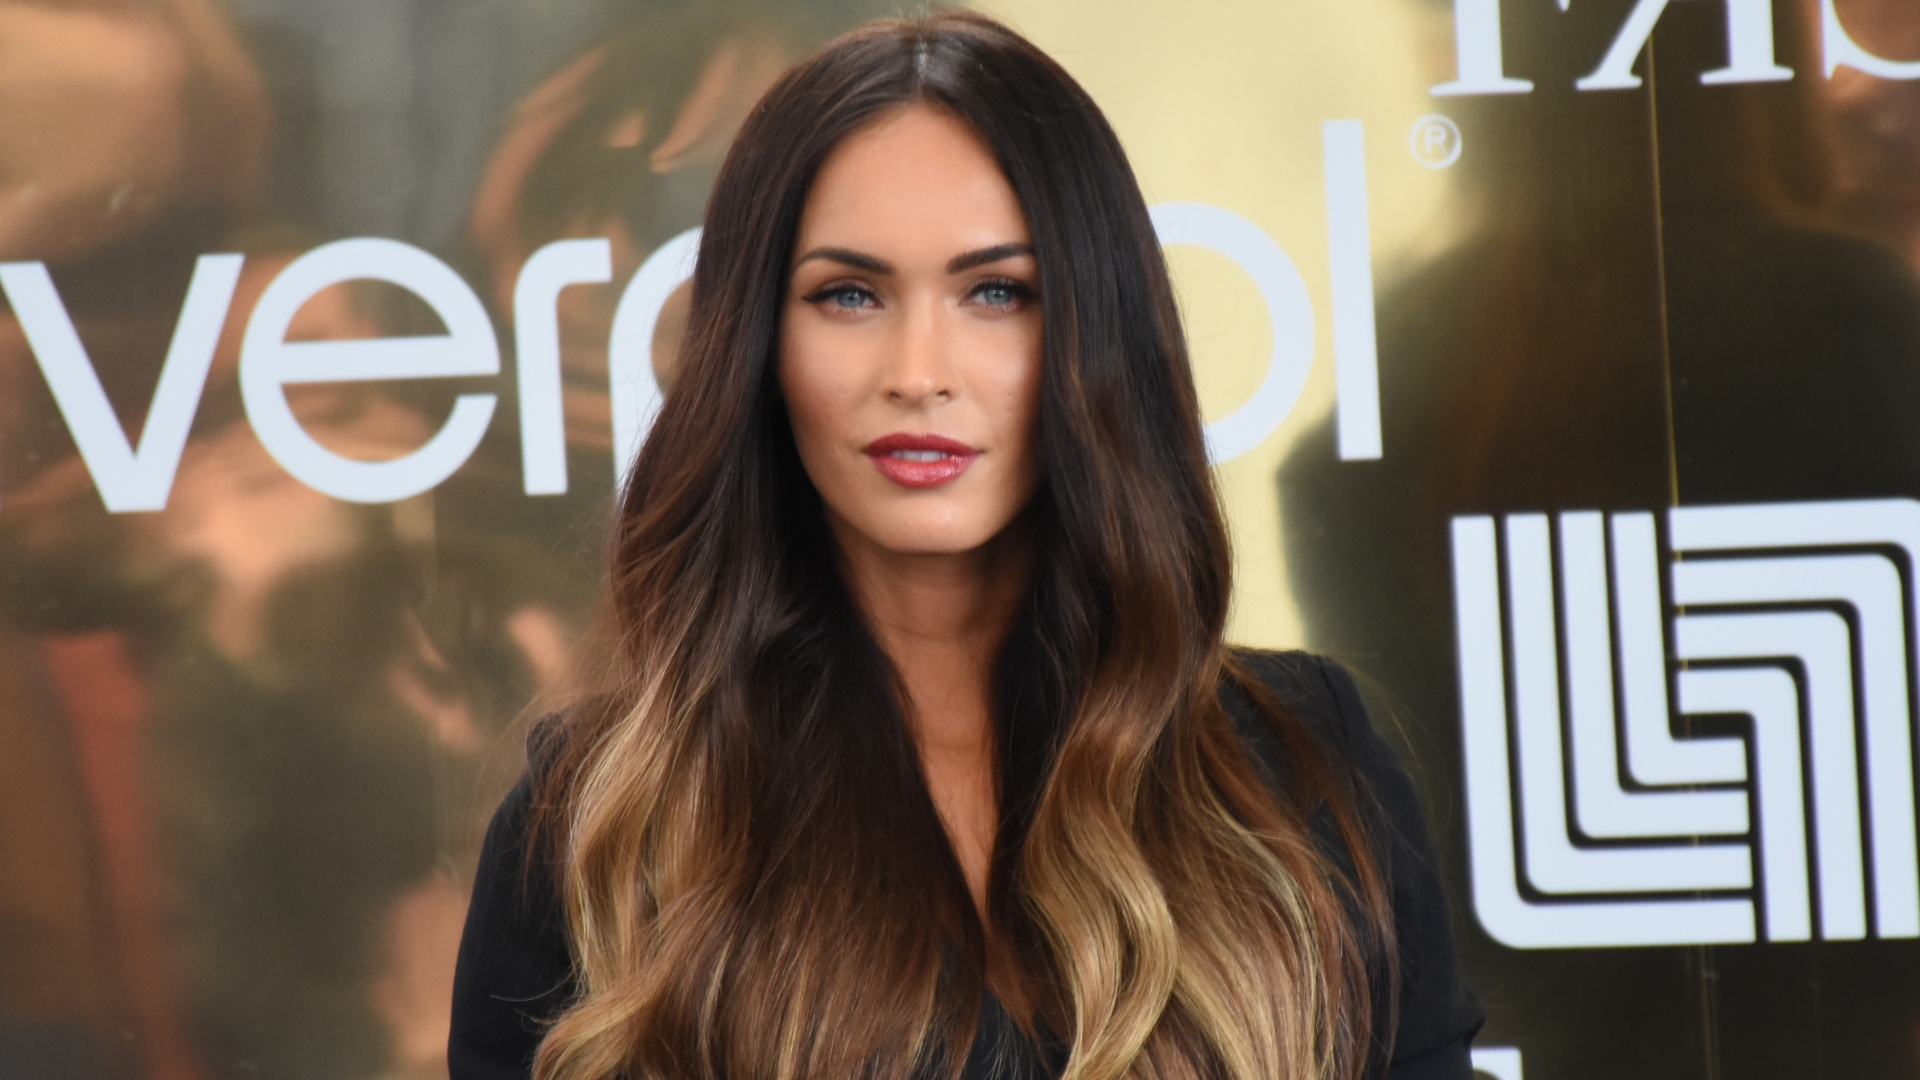 This Newly Viral Video of Megan Fox Describing Being Sexualized at Age 15 Is So Disturbing